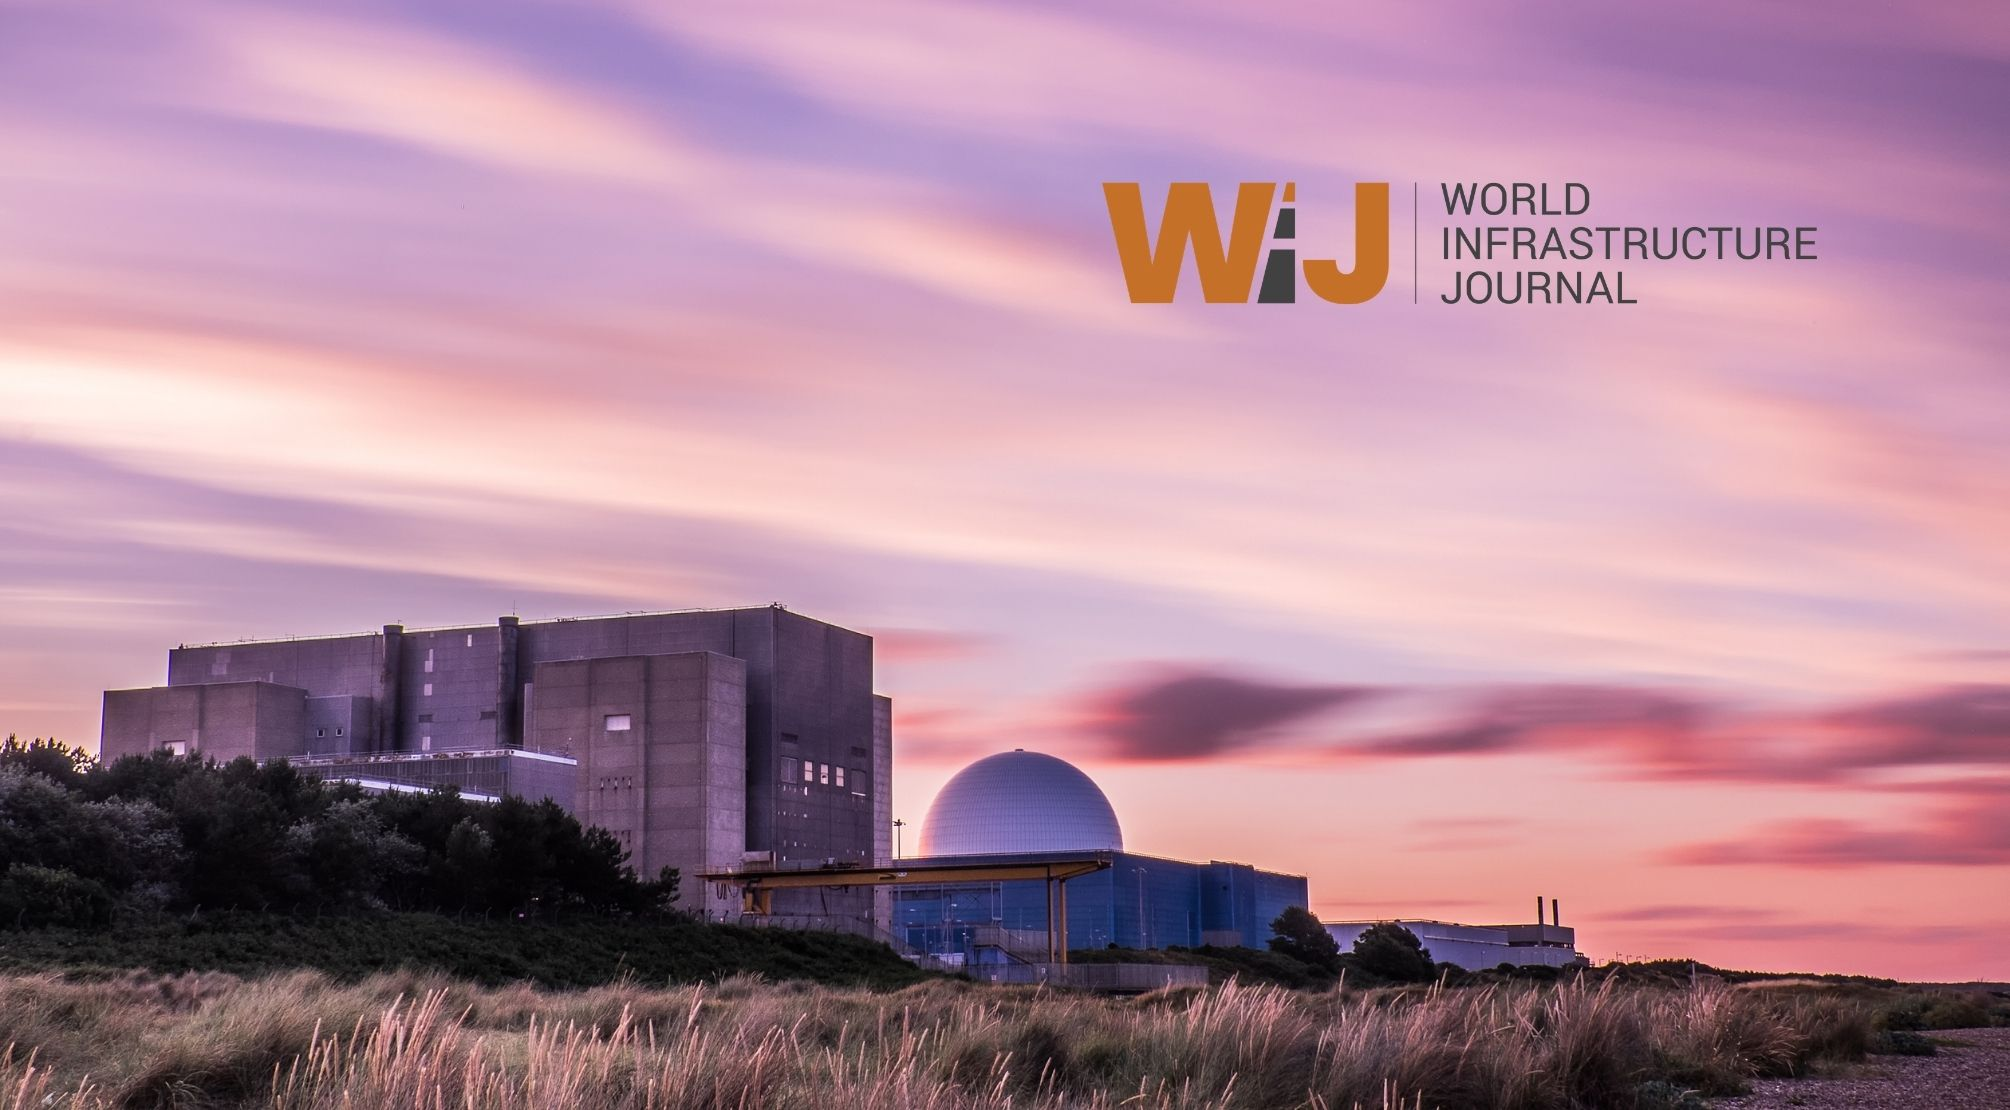 Immediate reactor repairs stop Suffolk power station opening - another blow to the nuclear sector